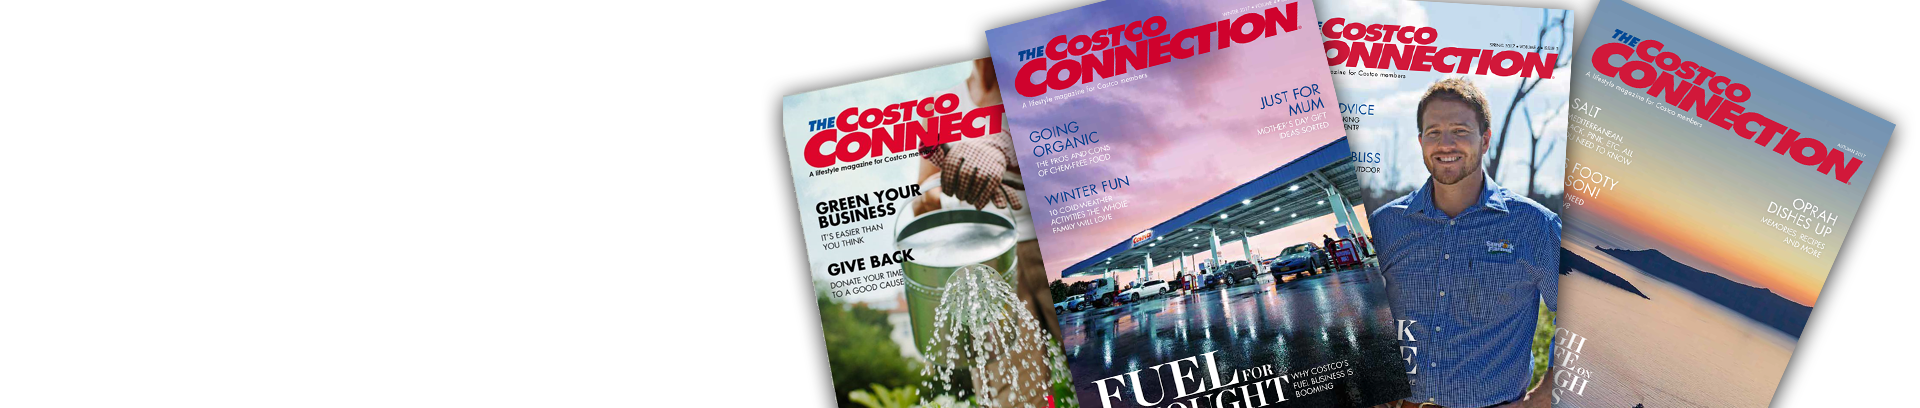 Costco coupons australia